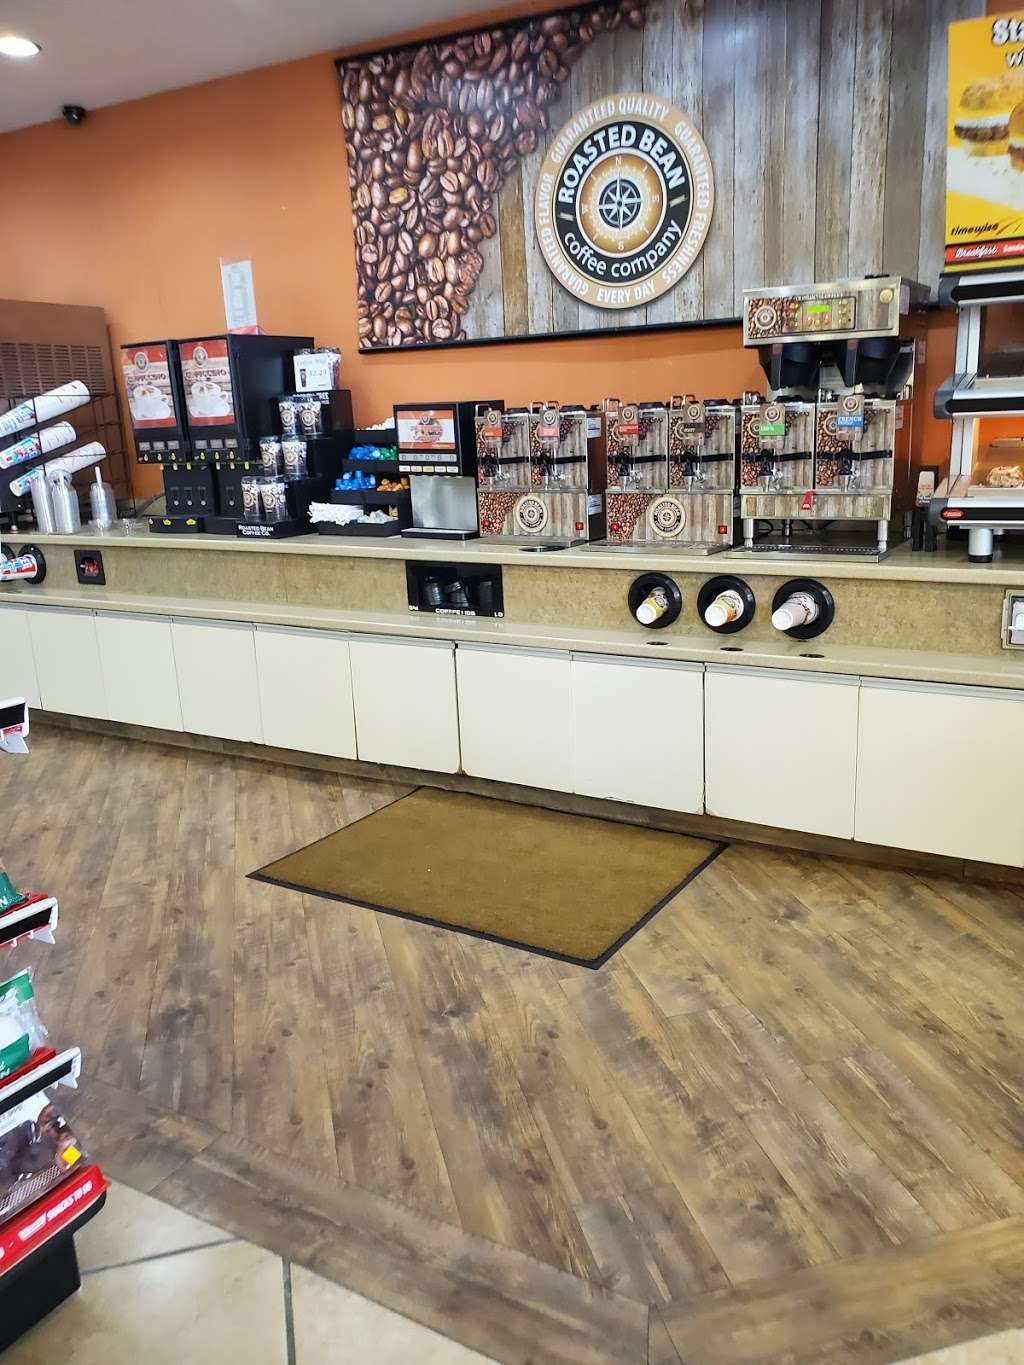 Timewise Food Store 292-05 - convenience store  | Photo 3 of 10 | Address: 306 Farm to Market 359, Brookshire, TX 77423, USA | Phone: (713) 789-0310